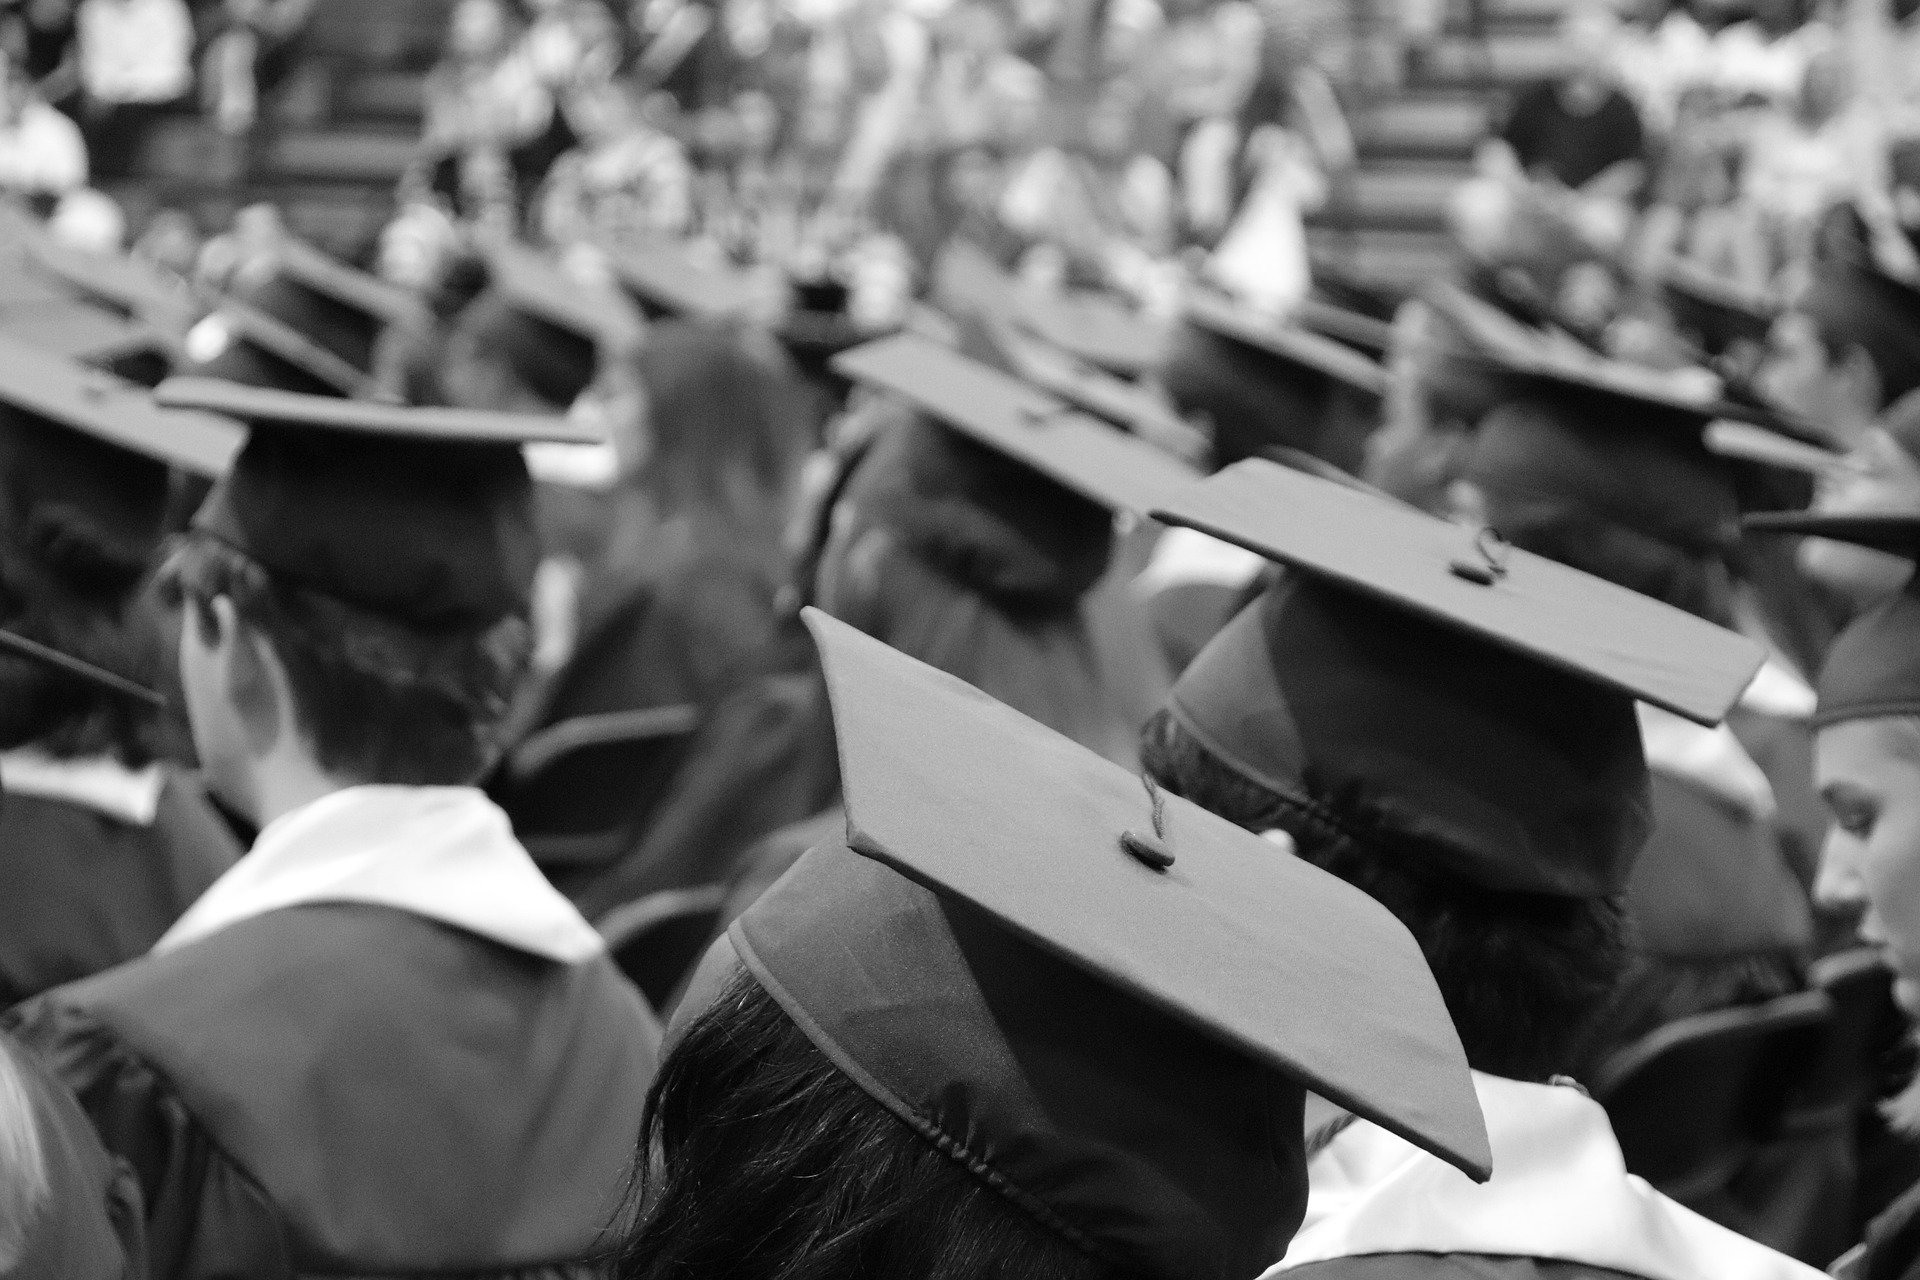 Free Job search tips for Graduates